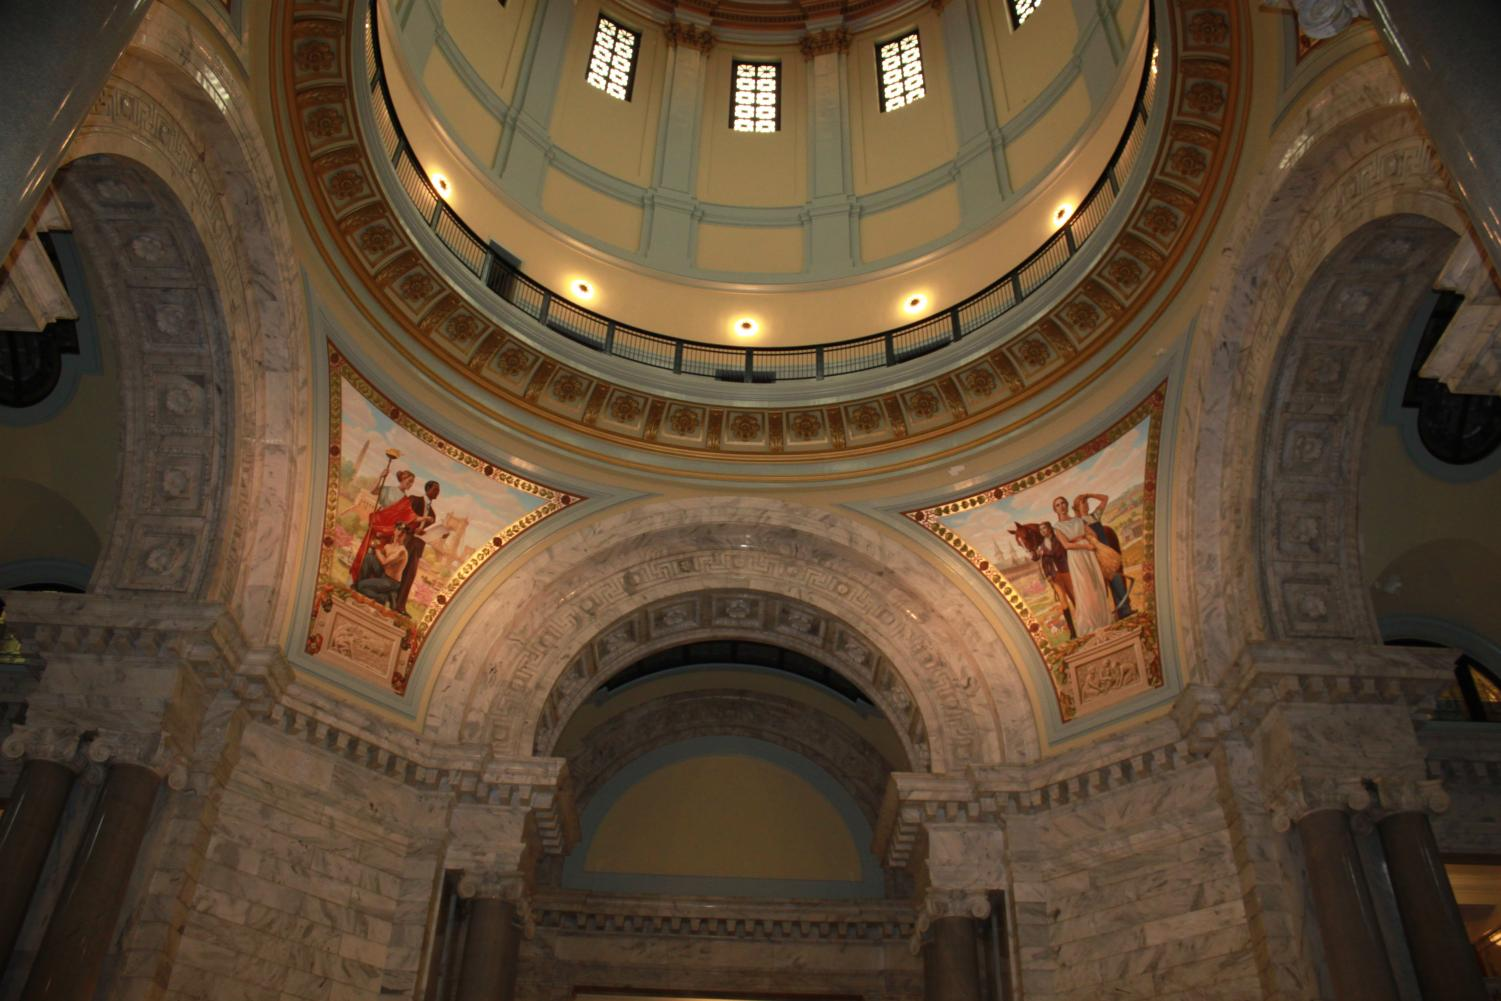 The+four+dome+pendentives+of+the+Capitol+are+each+unique+with+a+picture+related+to+a+moment+in+Kentucky%27s+history.